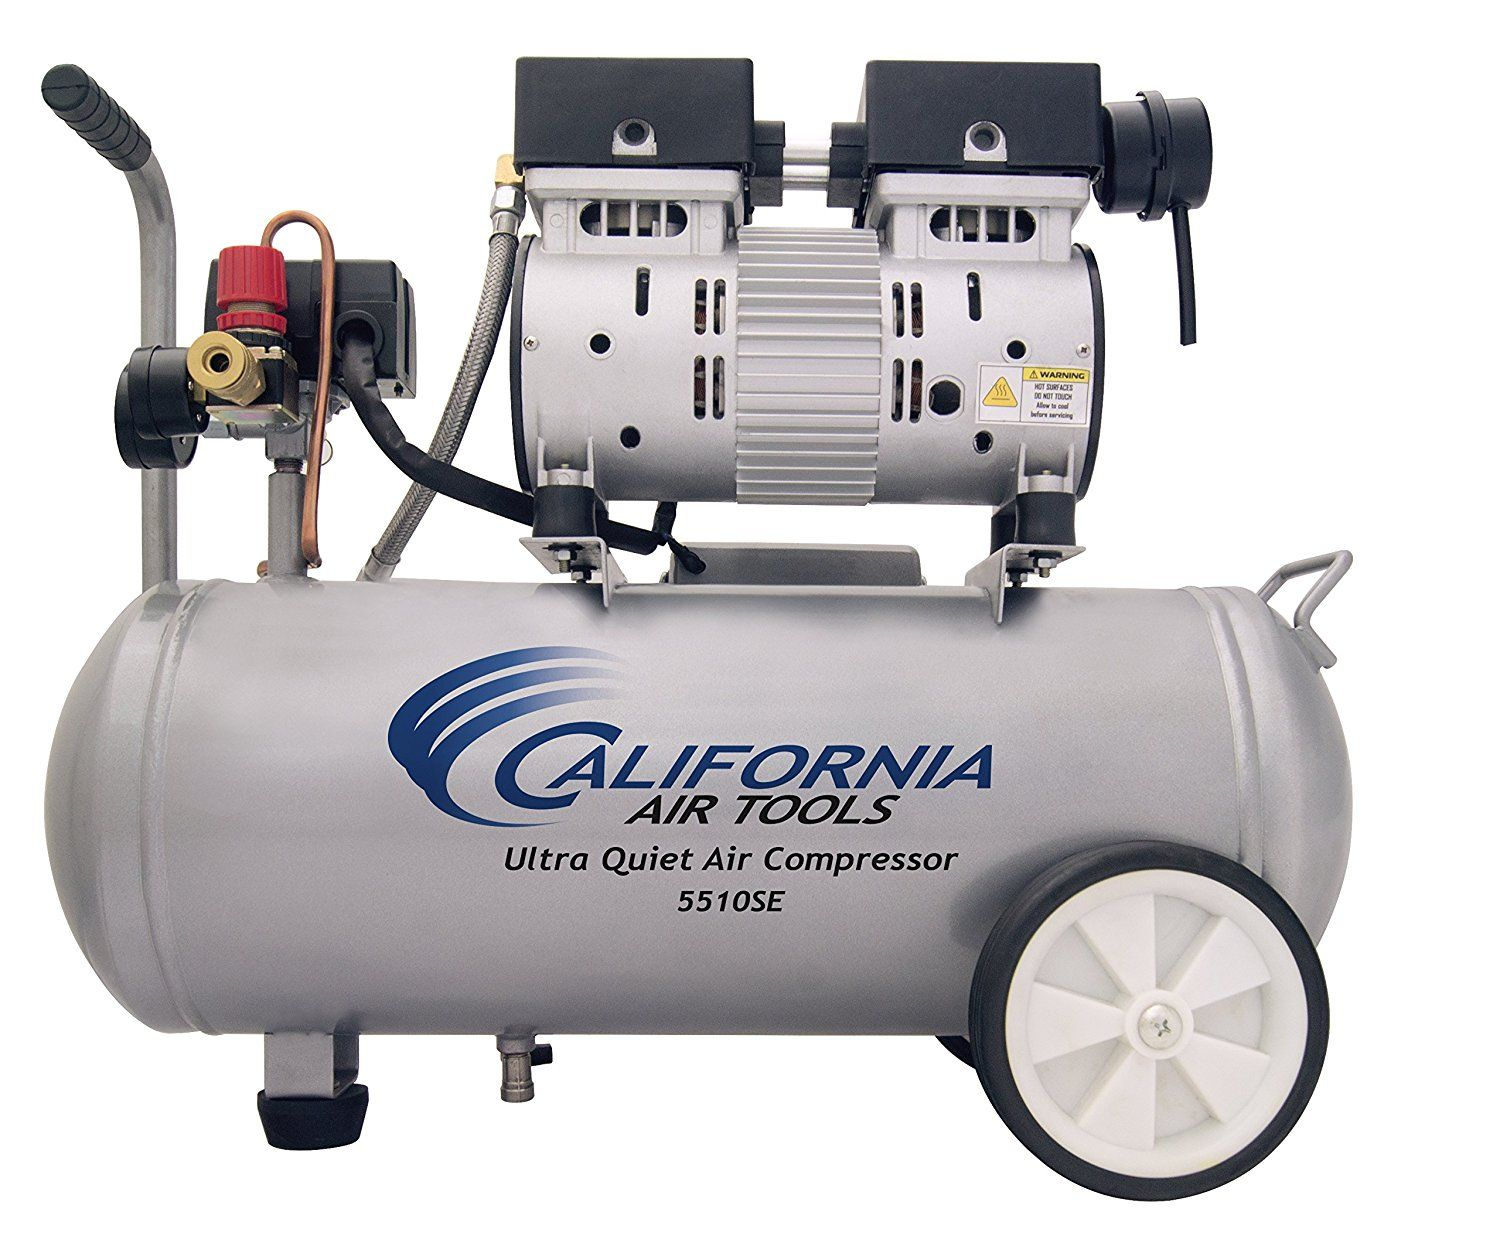 California Air Tools 5510SE Compressor Review Best